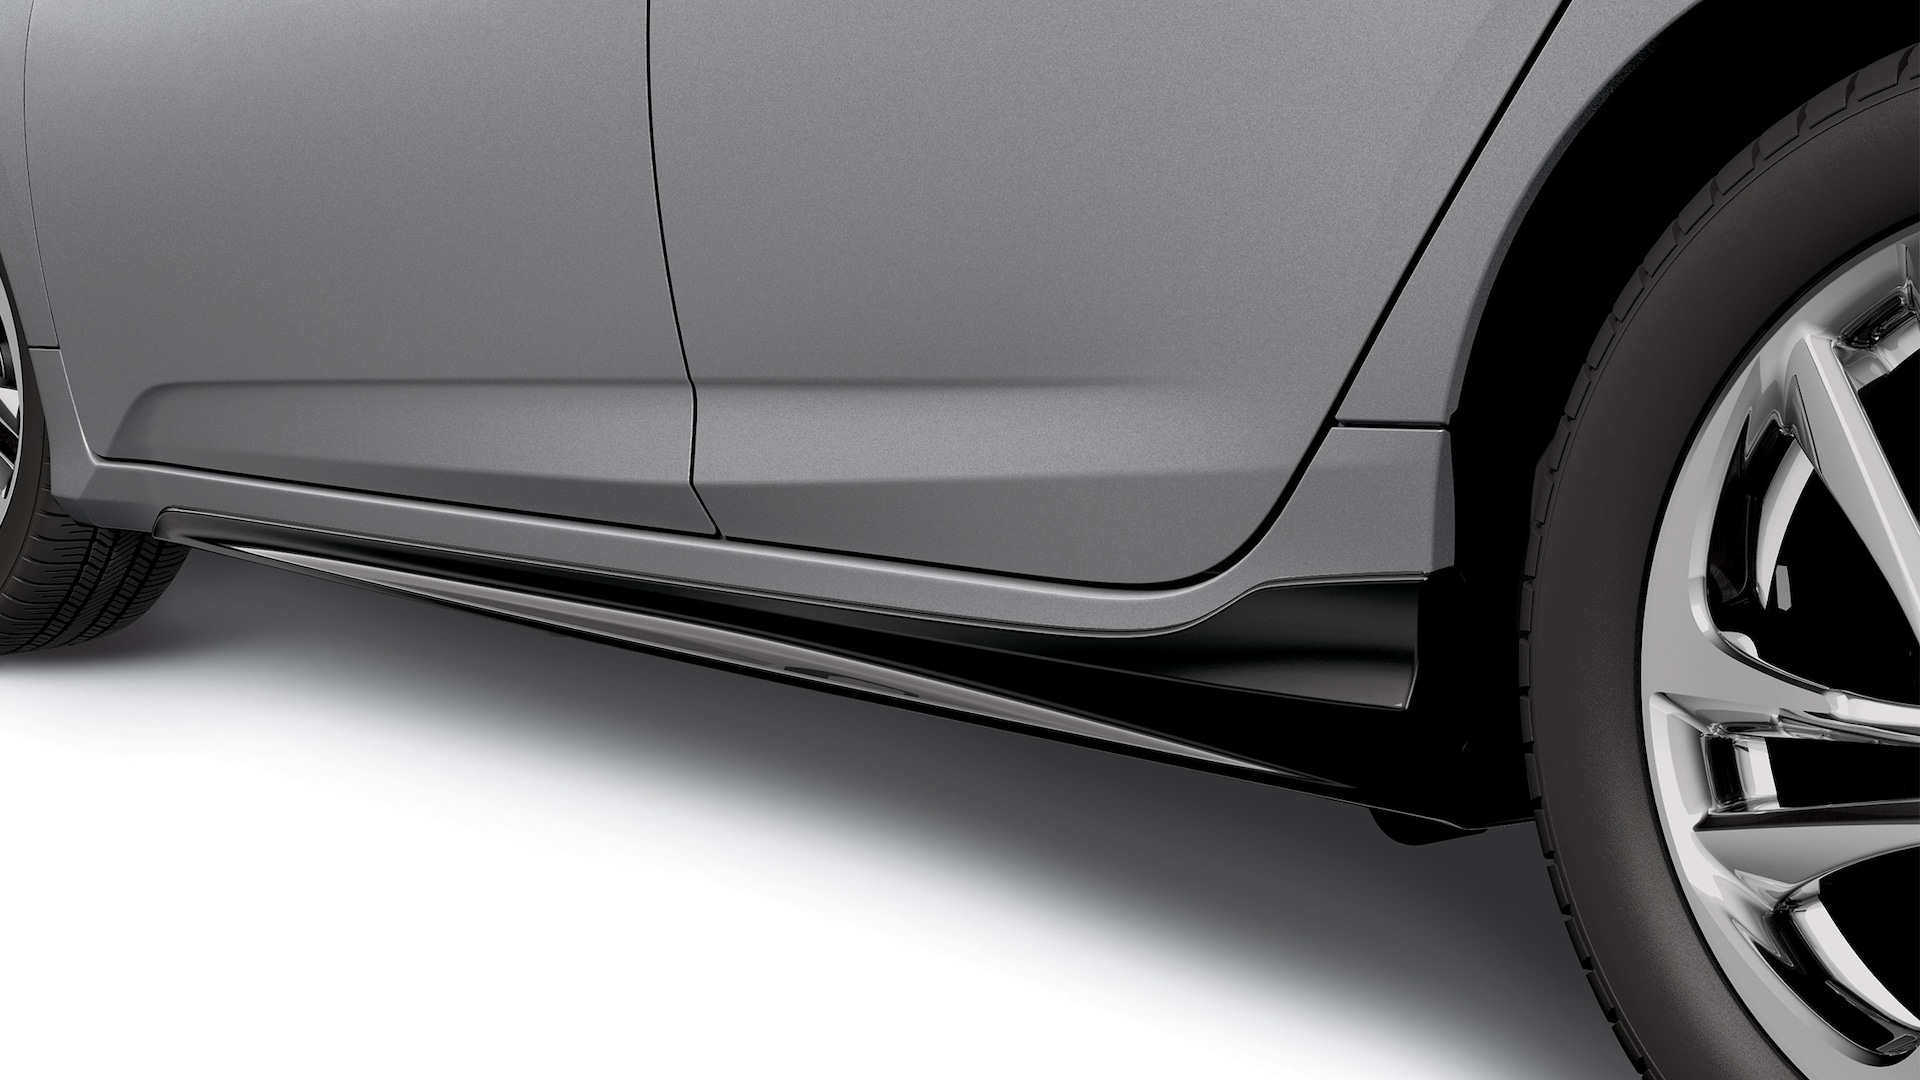 Door visor detail on the 2019 Honda Civic Sedan in Modern Steel Metallic.